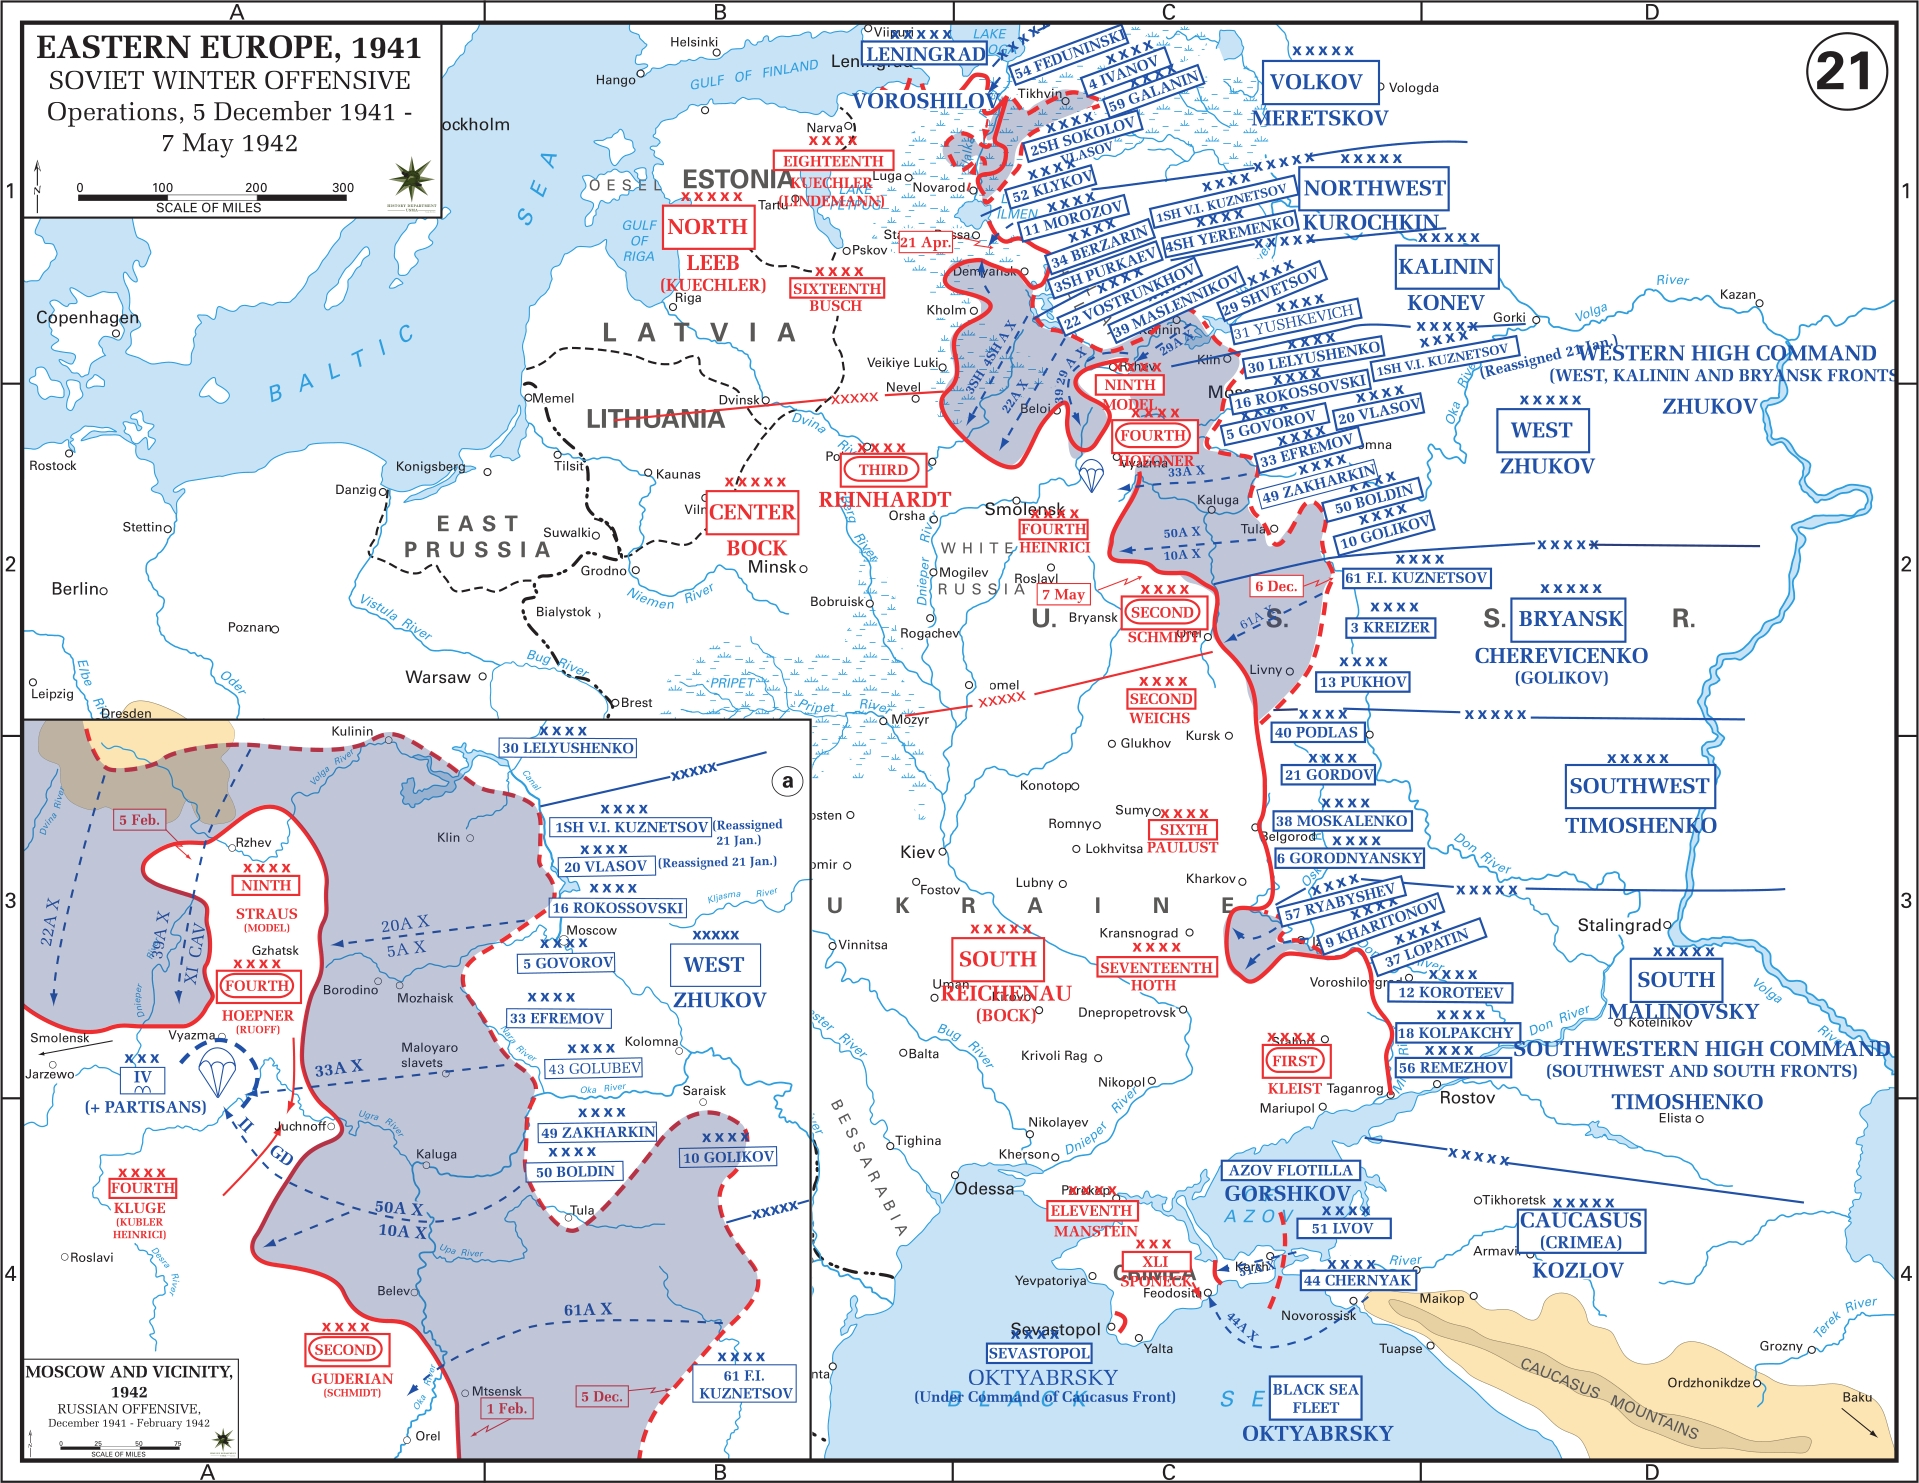 Eastern Front Maps Of World War Ii - Inflab - Medium intended for East Germany Map 1945